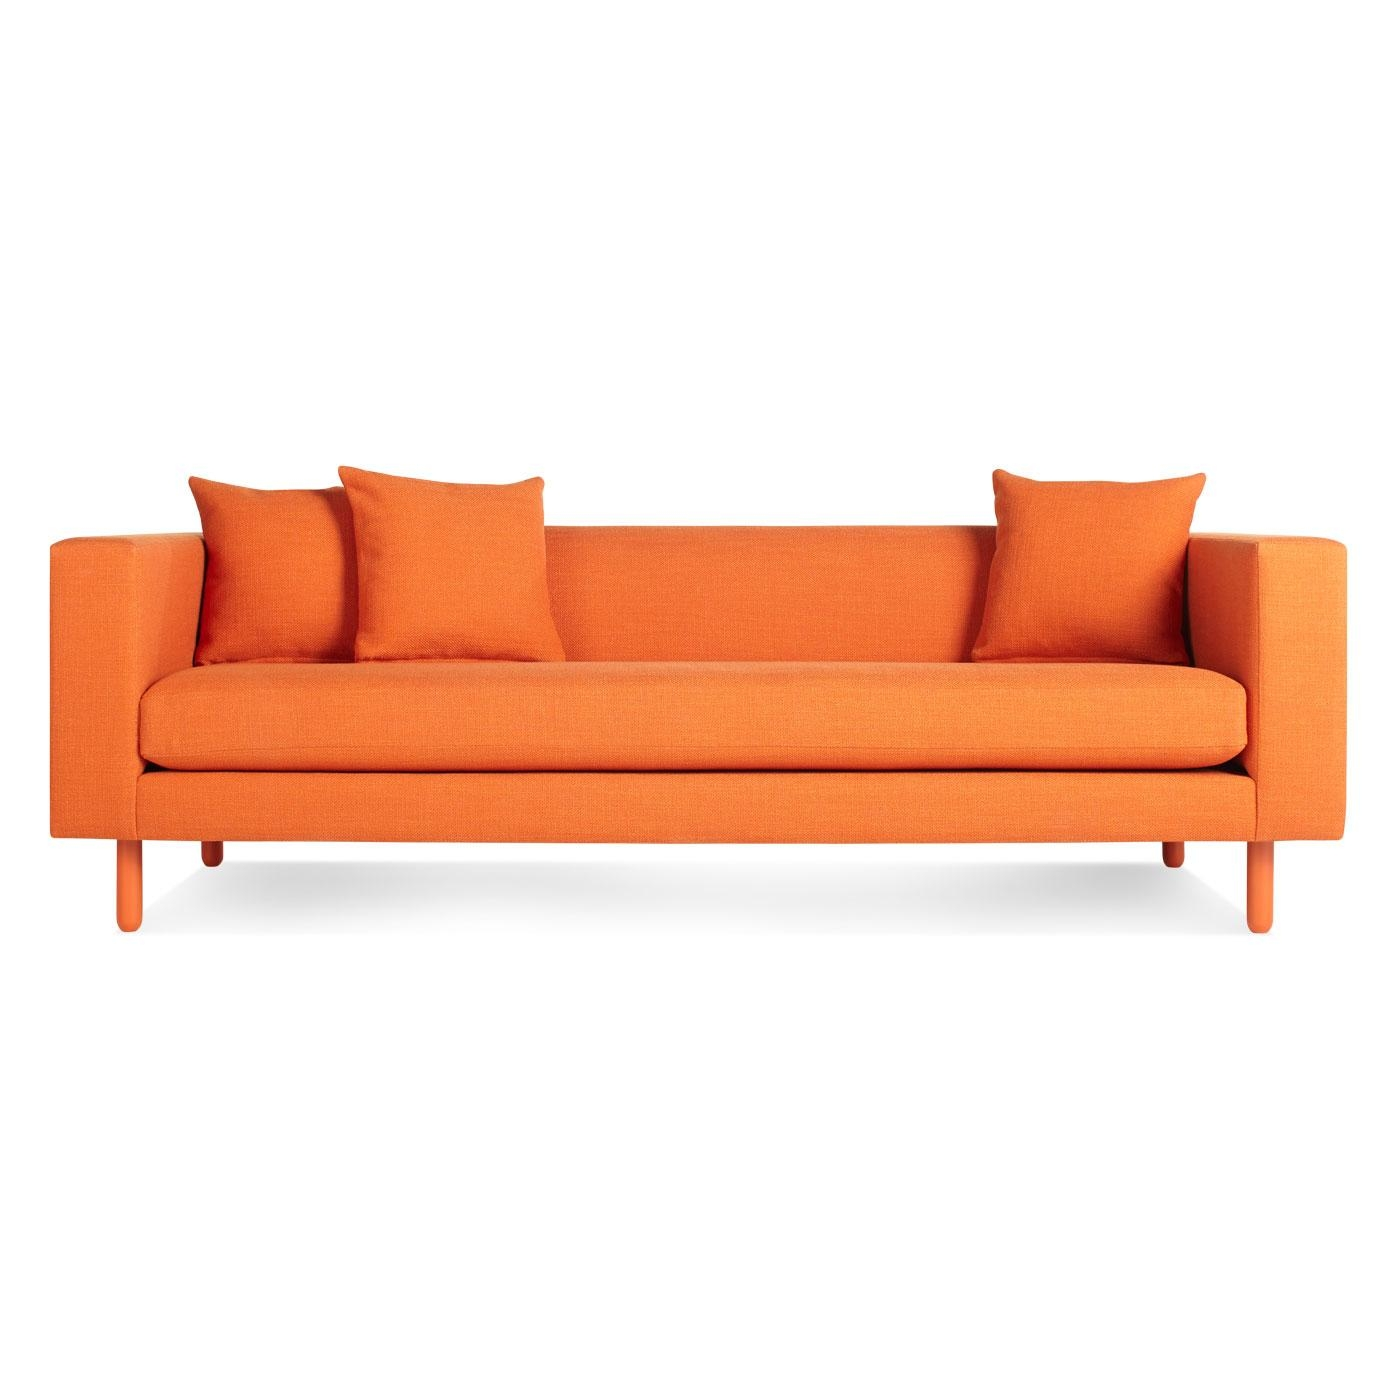 Featured Image of Orange Modern Sofas